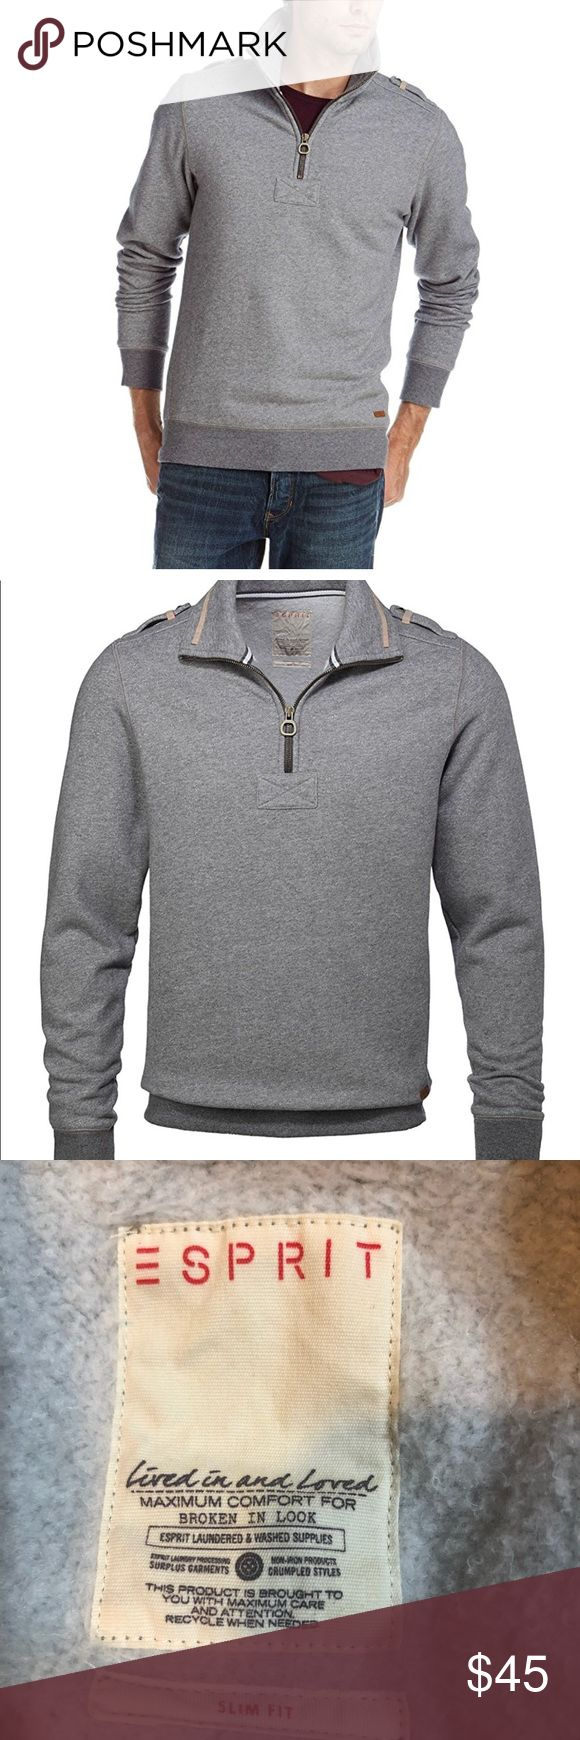 Men's Esprit Herren Sweatshirt size XXL Amazing condition Men's Esprit Herren Sweatshirt XXL. This shirt is pre owned however it's in almost perfect condition. Slim fit. Notice the shoulder details and also the cool Esprit leather tan on the bottom of the shirt. Esprit Shirts Sweatshirts & Hoodies